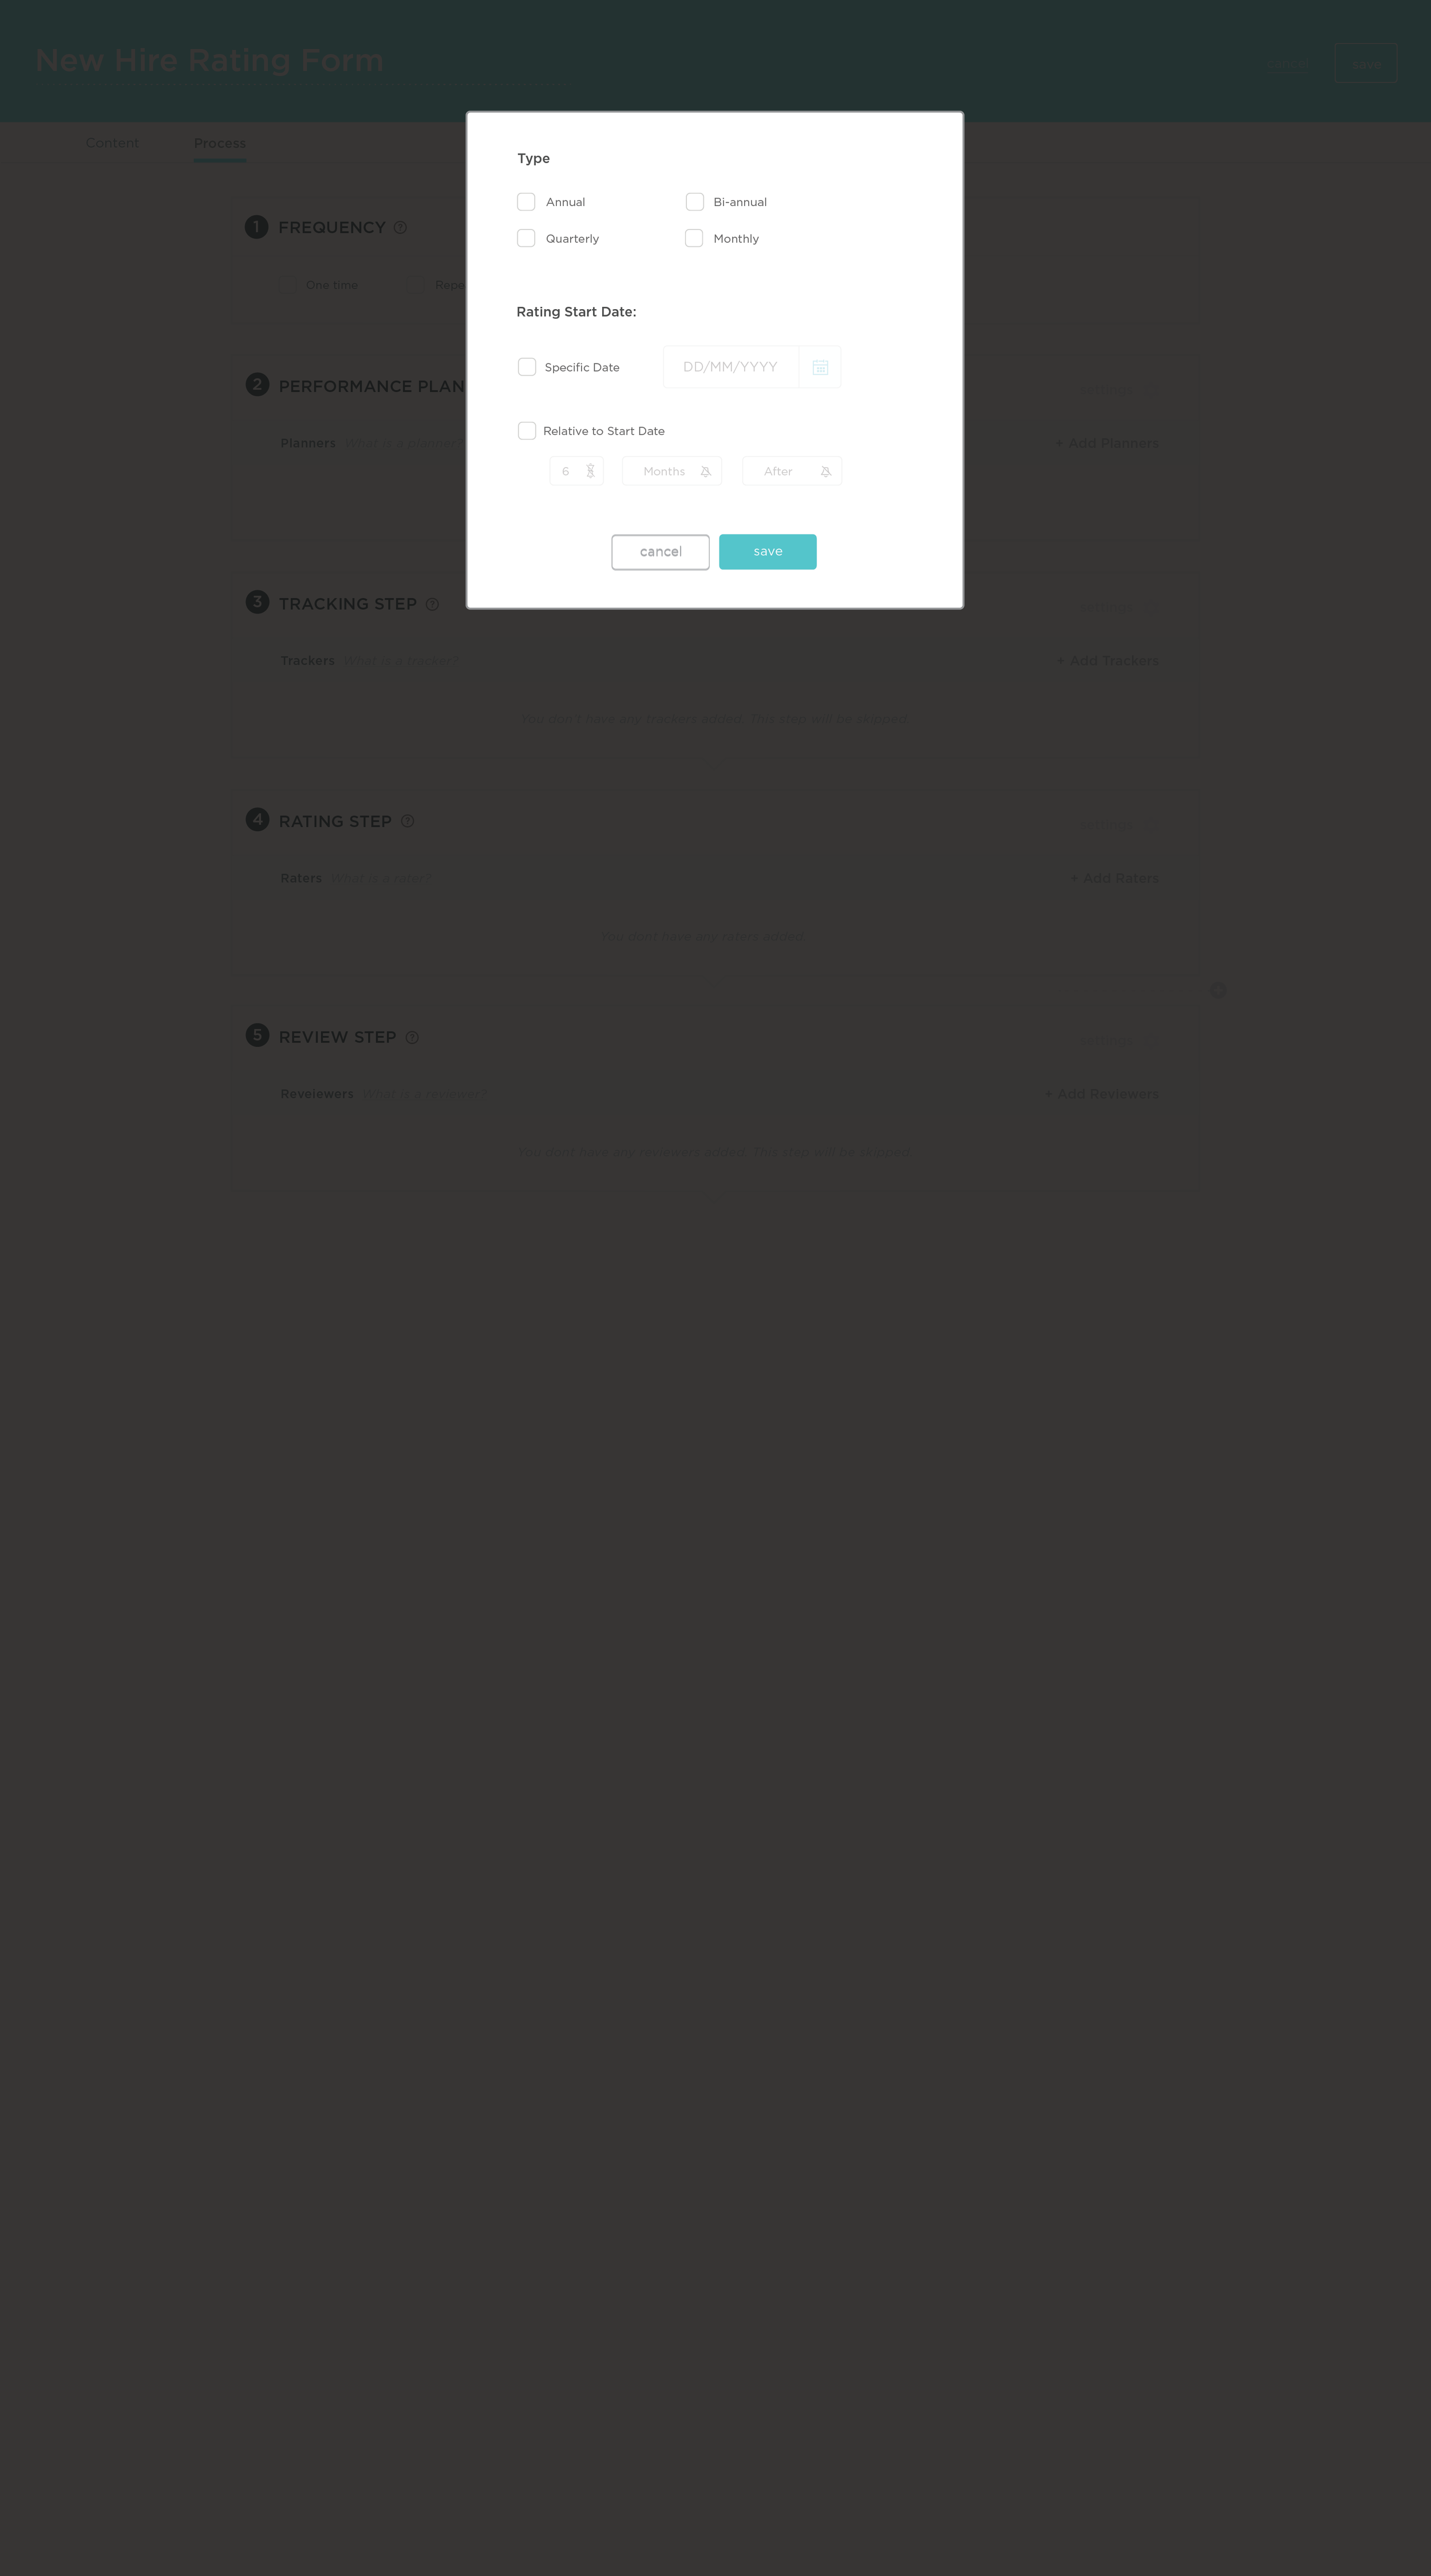 Invision_Pe_rating-form-process_03_2.png